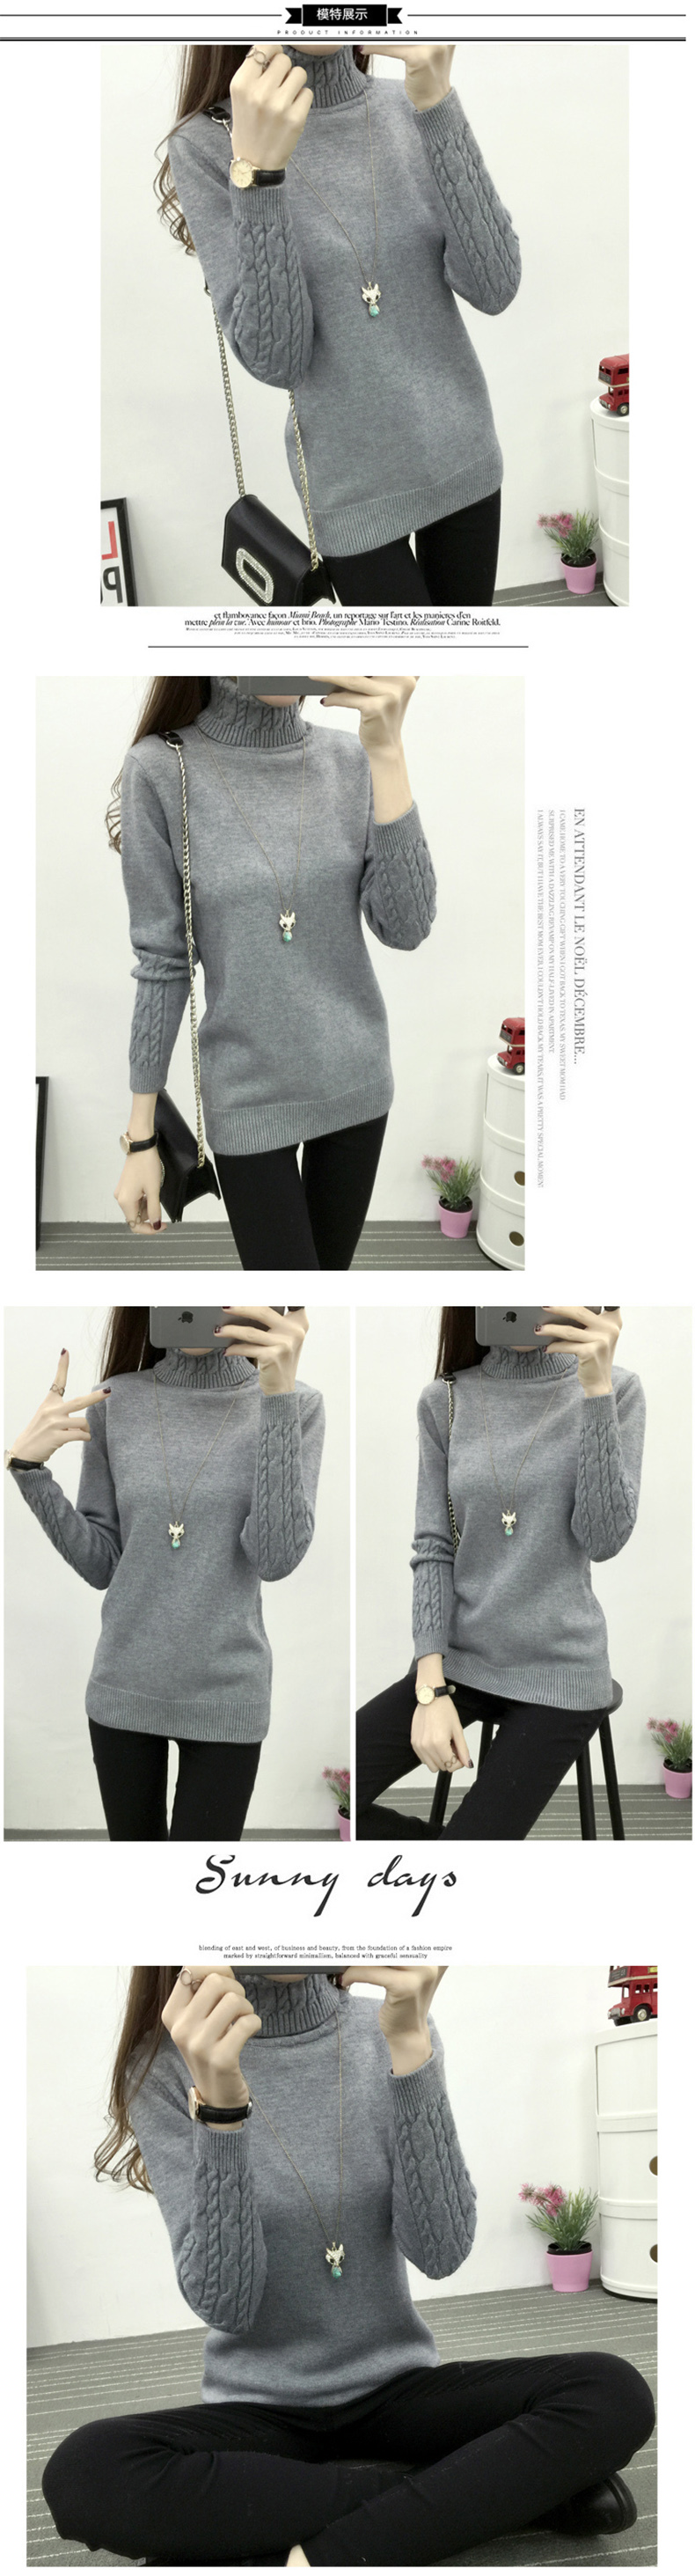 Thicken Warm Knitting Sweaters And Pullovers For Women 17 Winter Casual Elastic Turtleneck Knitwear Female Jumper Tricot Tops 2